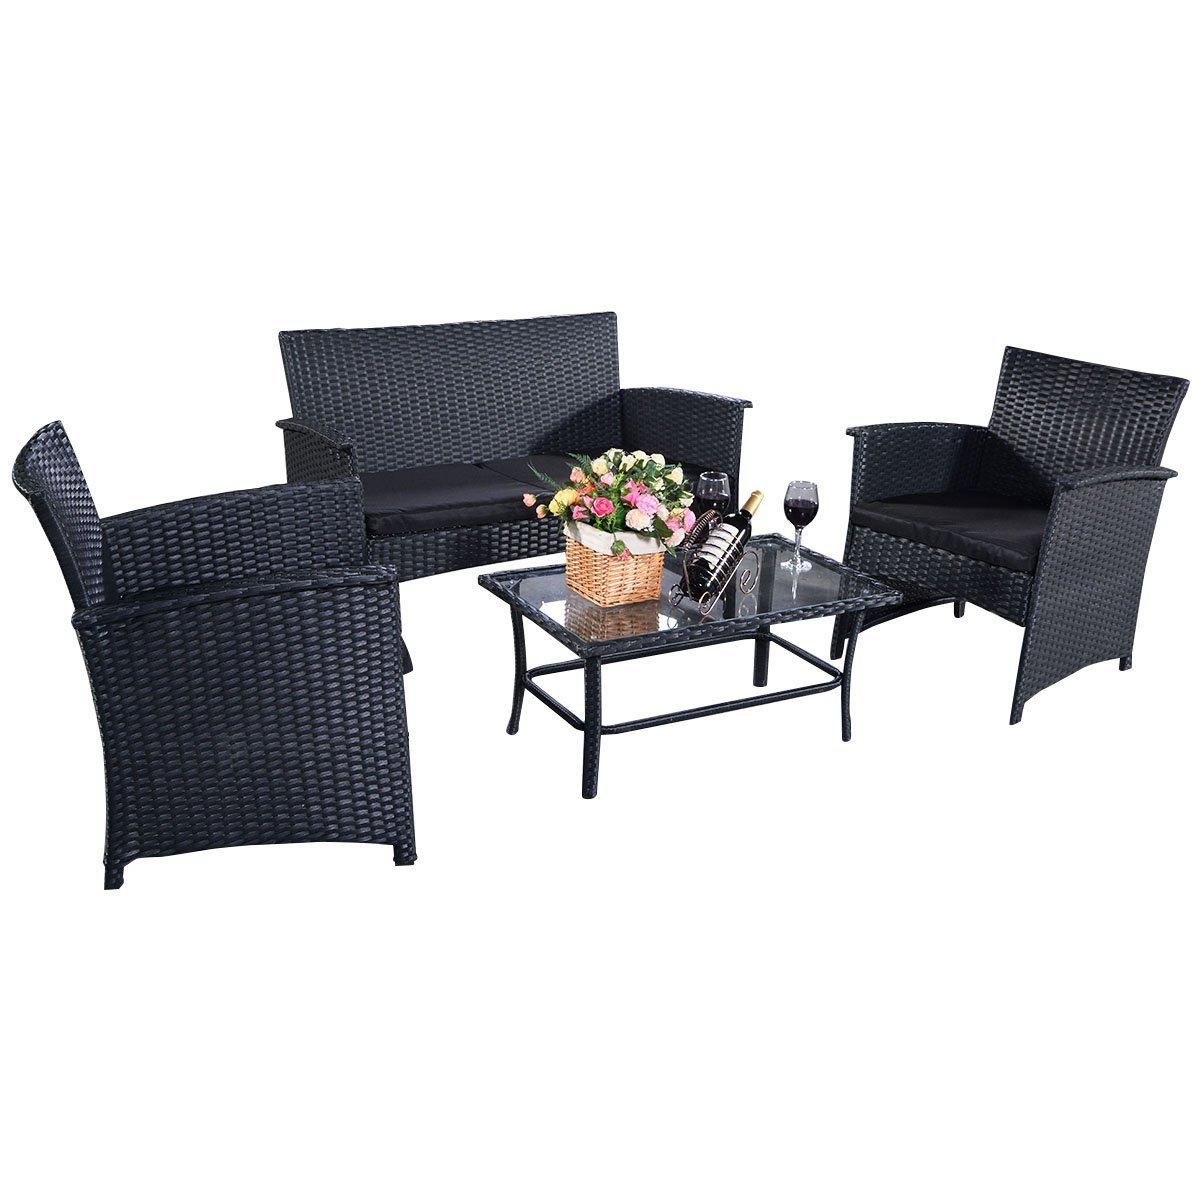 4tlg poly ratten gartengarnitur gartenm bel rattanm bel lounge sitzgruppe sofa garten set mit. Black Bedroom Furniture Sets. Home Design Ideas